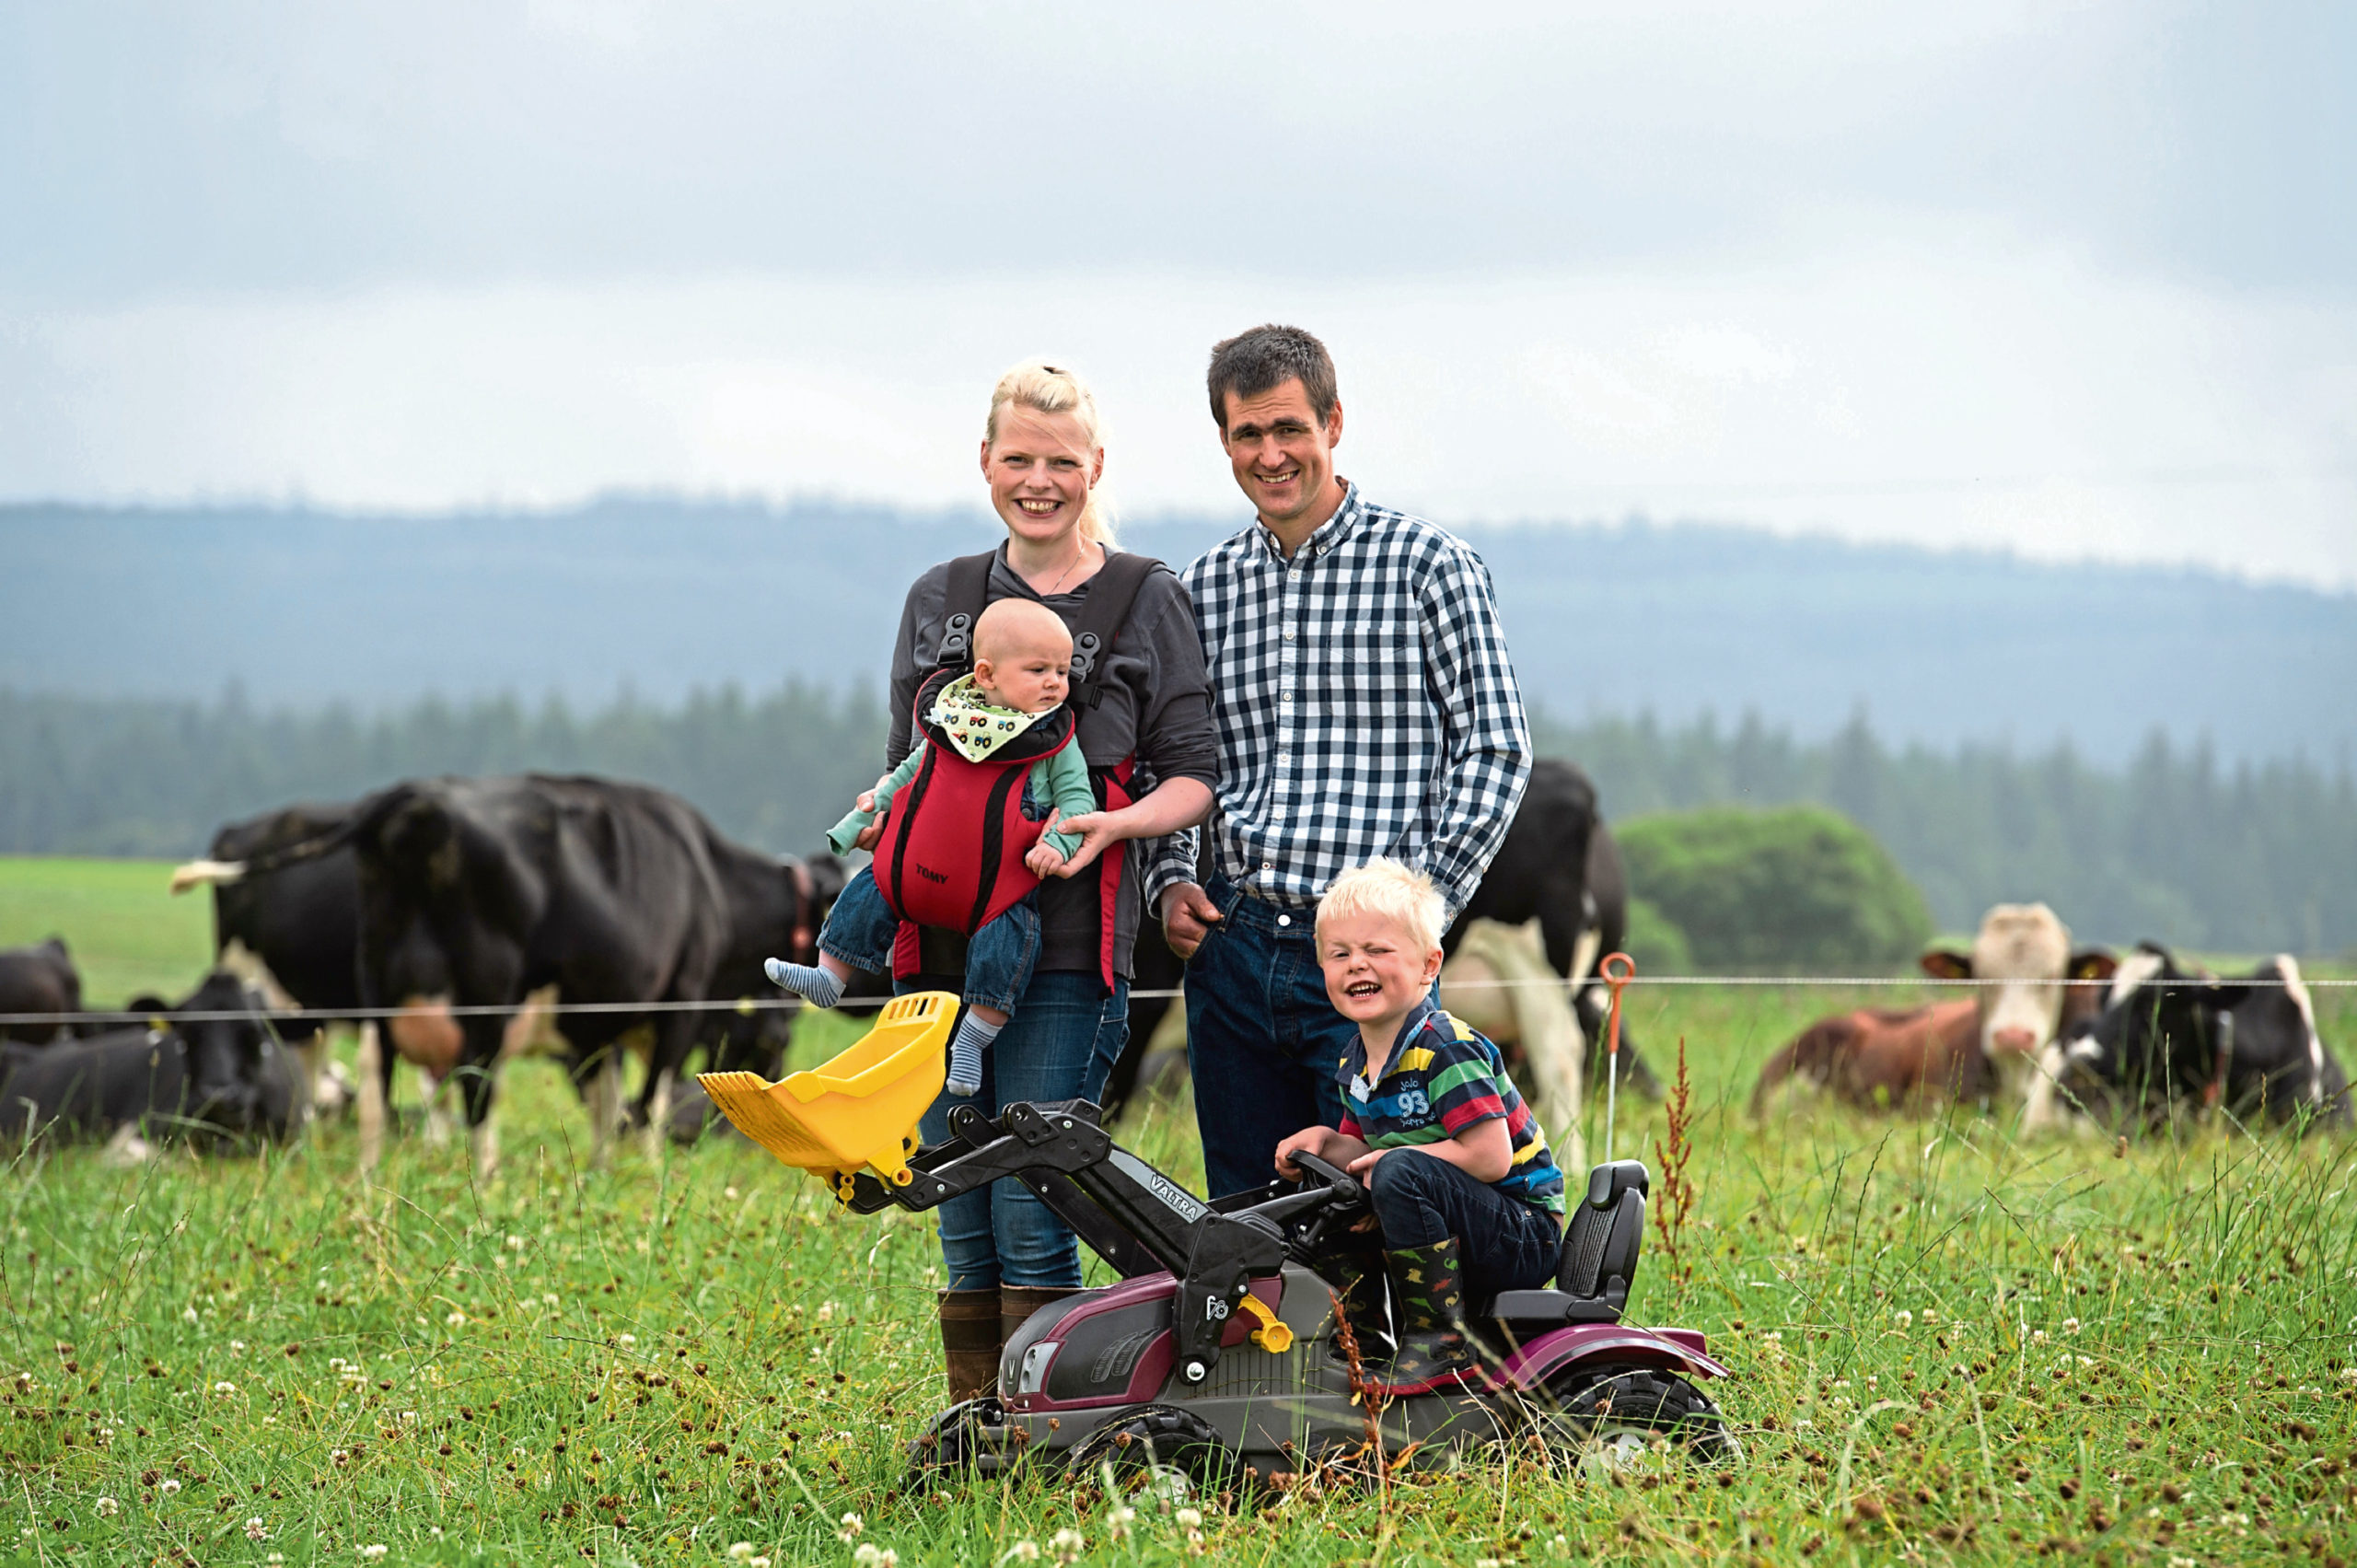 June and Gordon Whiteford with their children Alexander, 4, and four-month-old Struan.